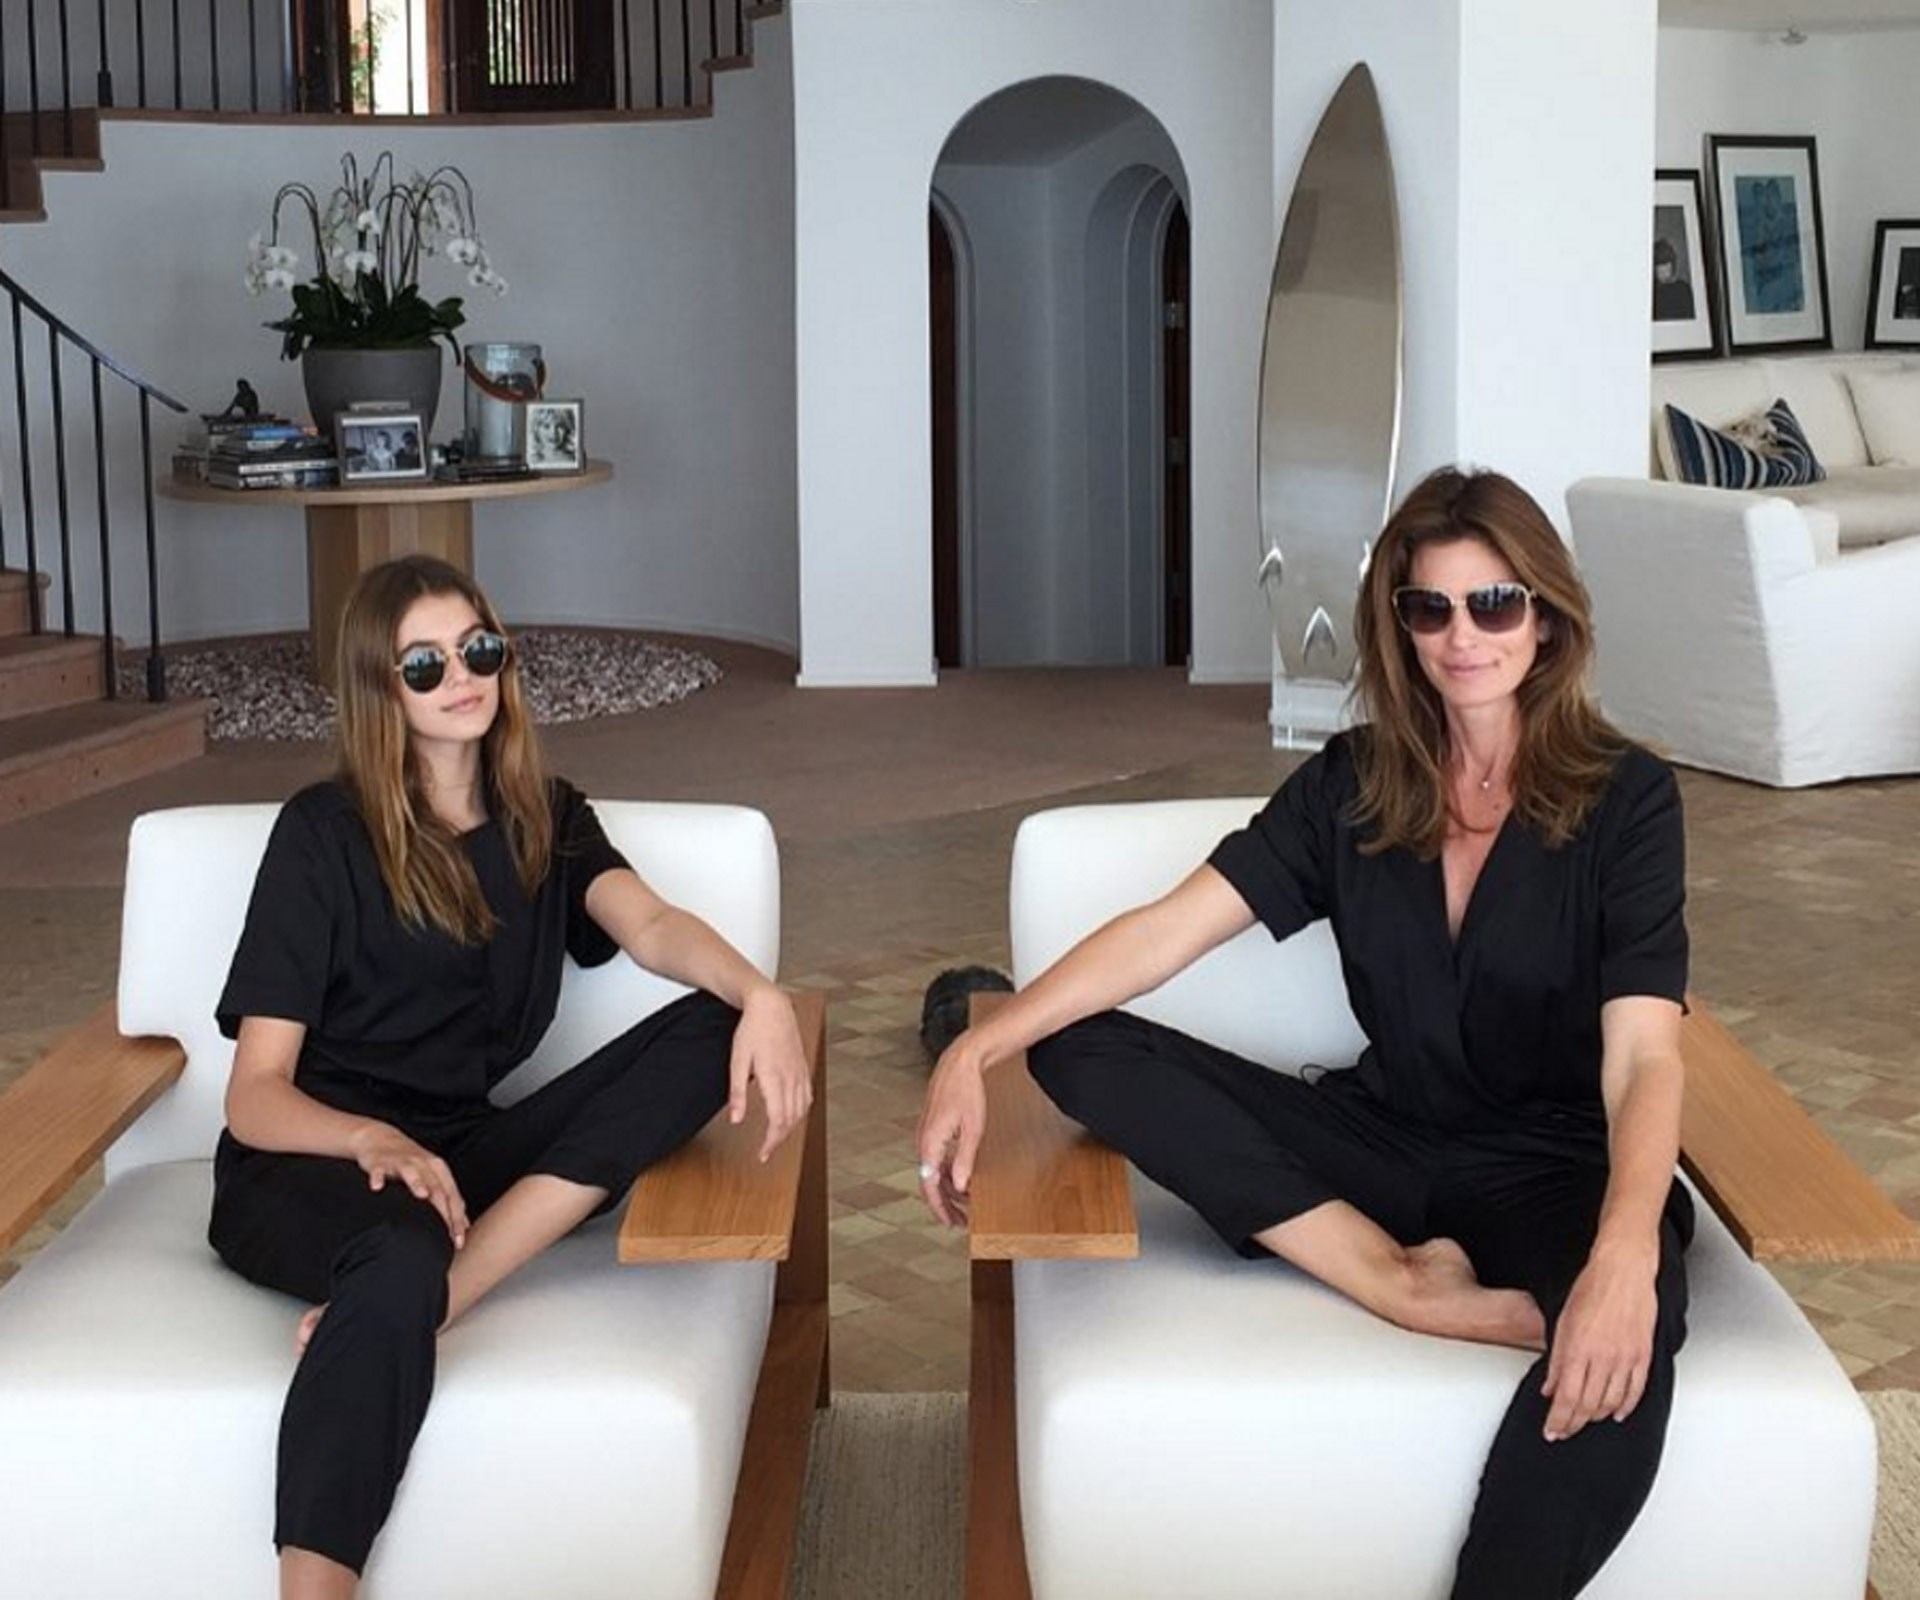 Twinning! Cindy Crawford and her look-alike daughter Kaia Gruber were relishing their Coco Rocha designed jumpsuits.